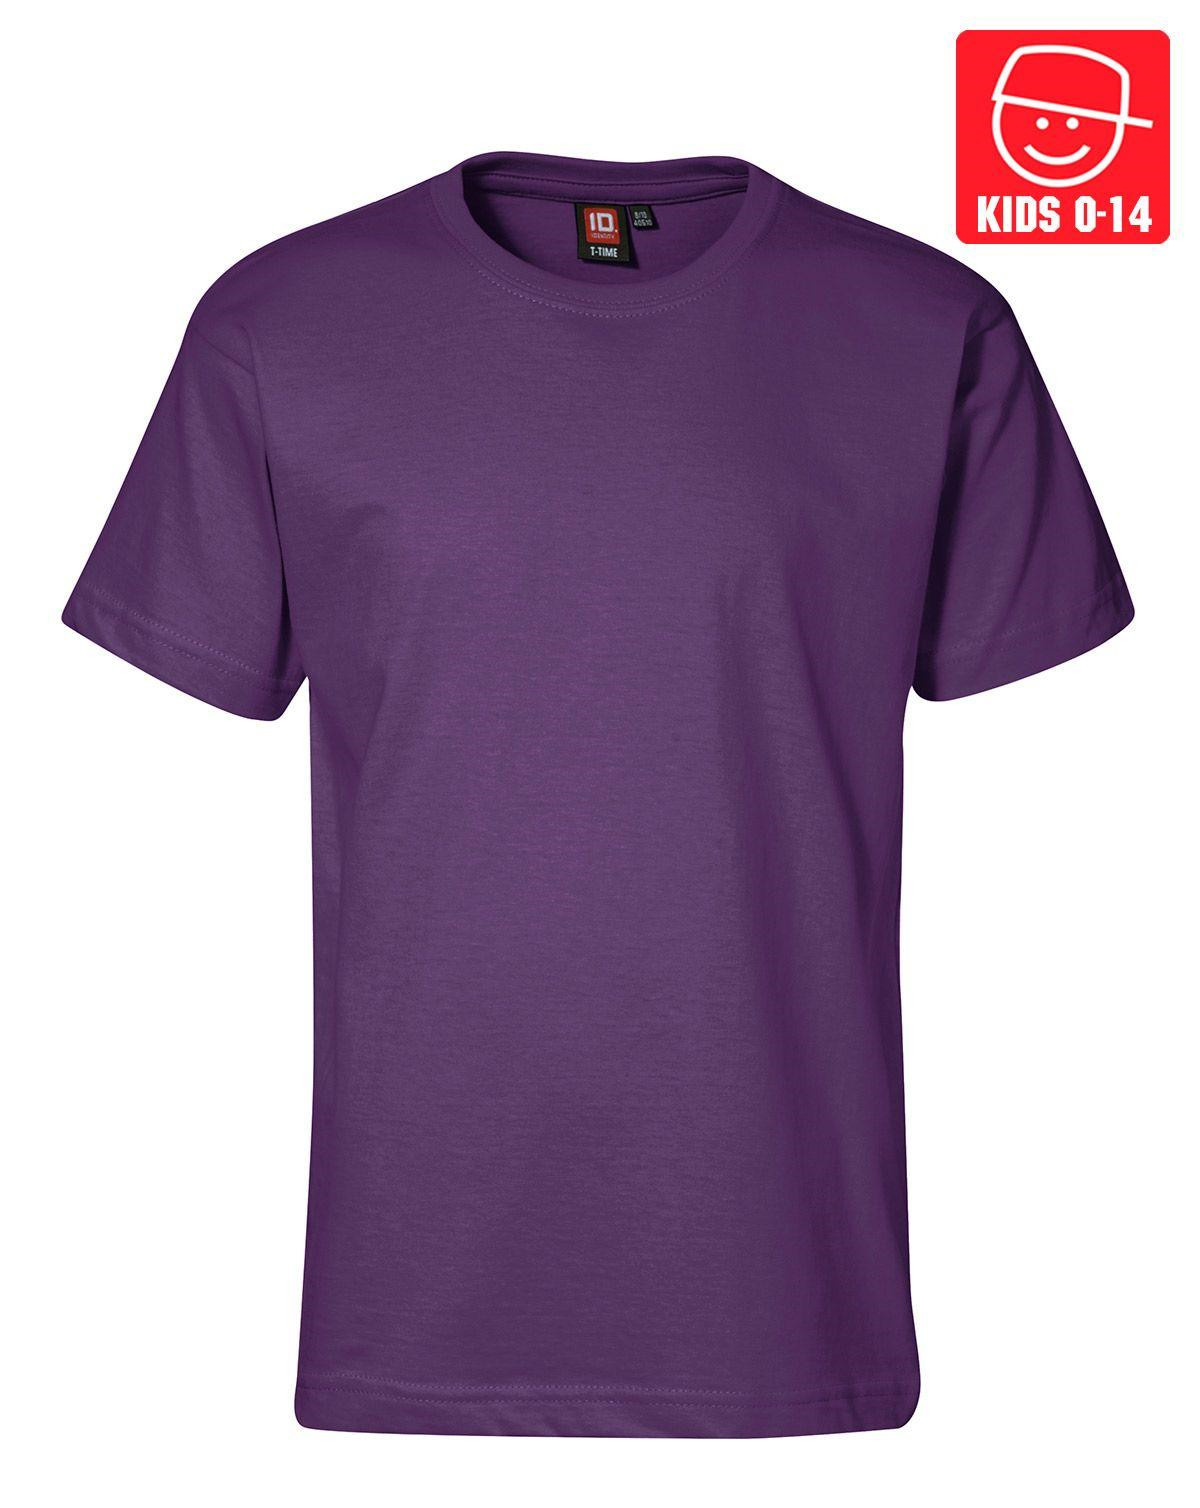 Image of   ID T-TIME T-shirt (Lilla, 128)